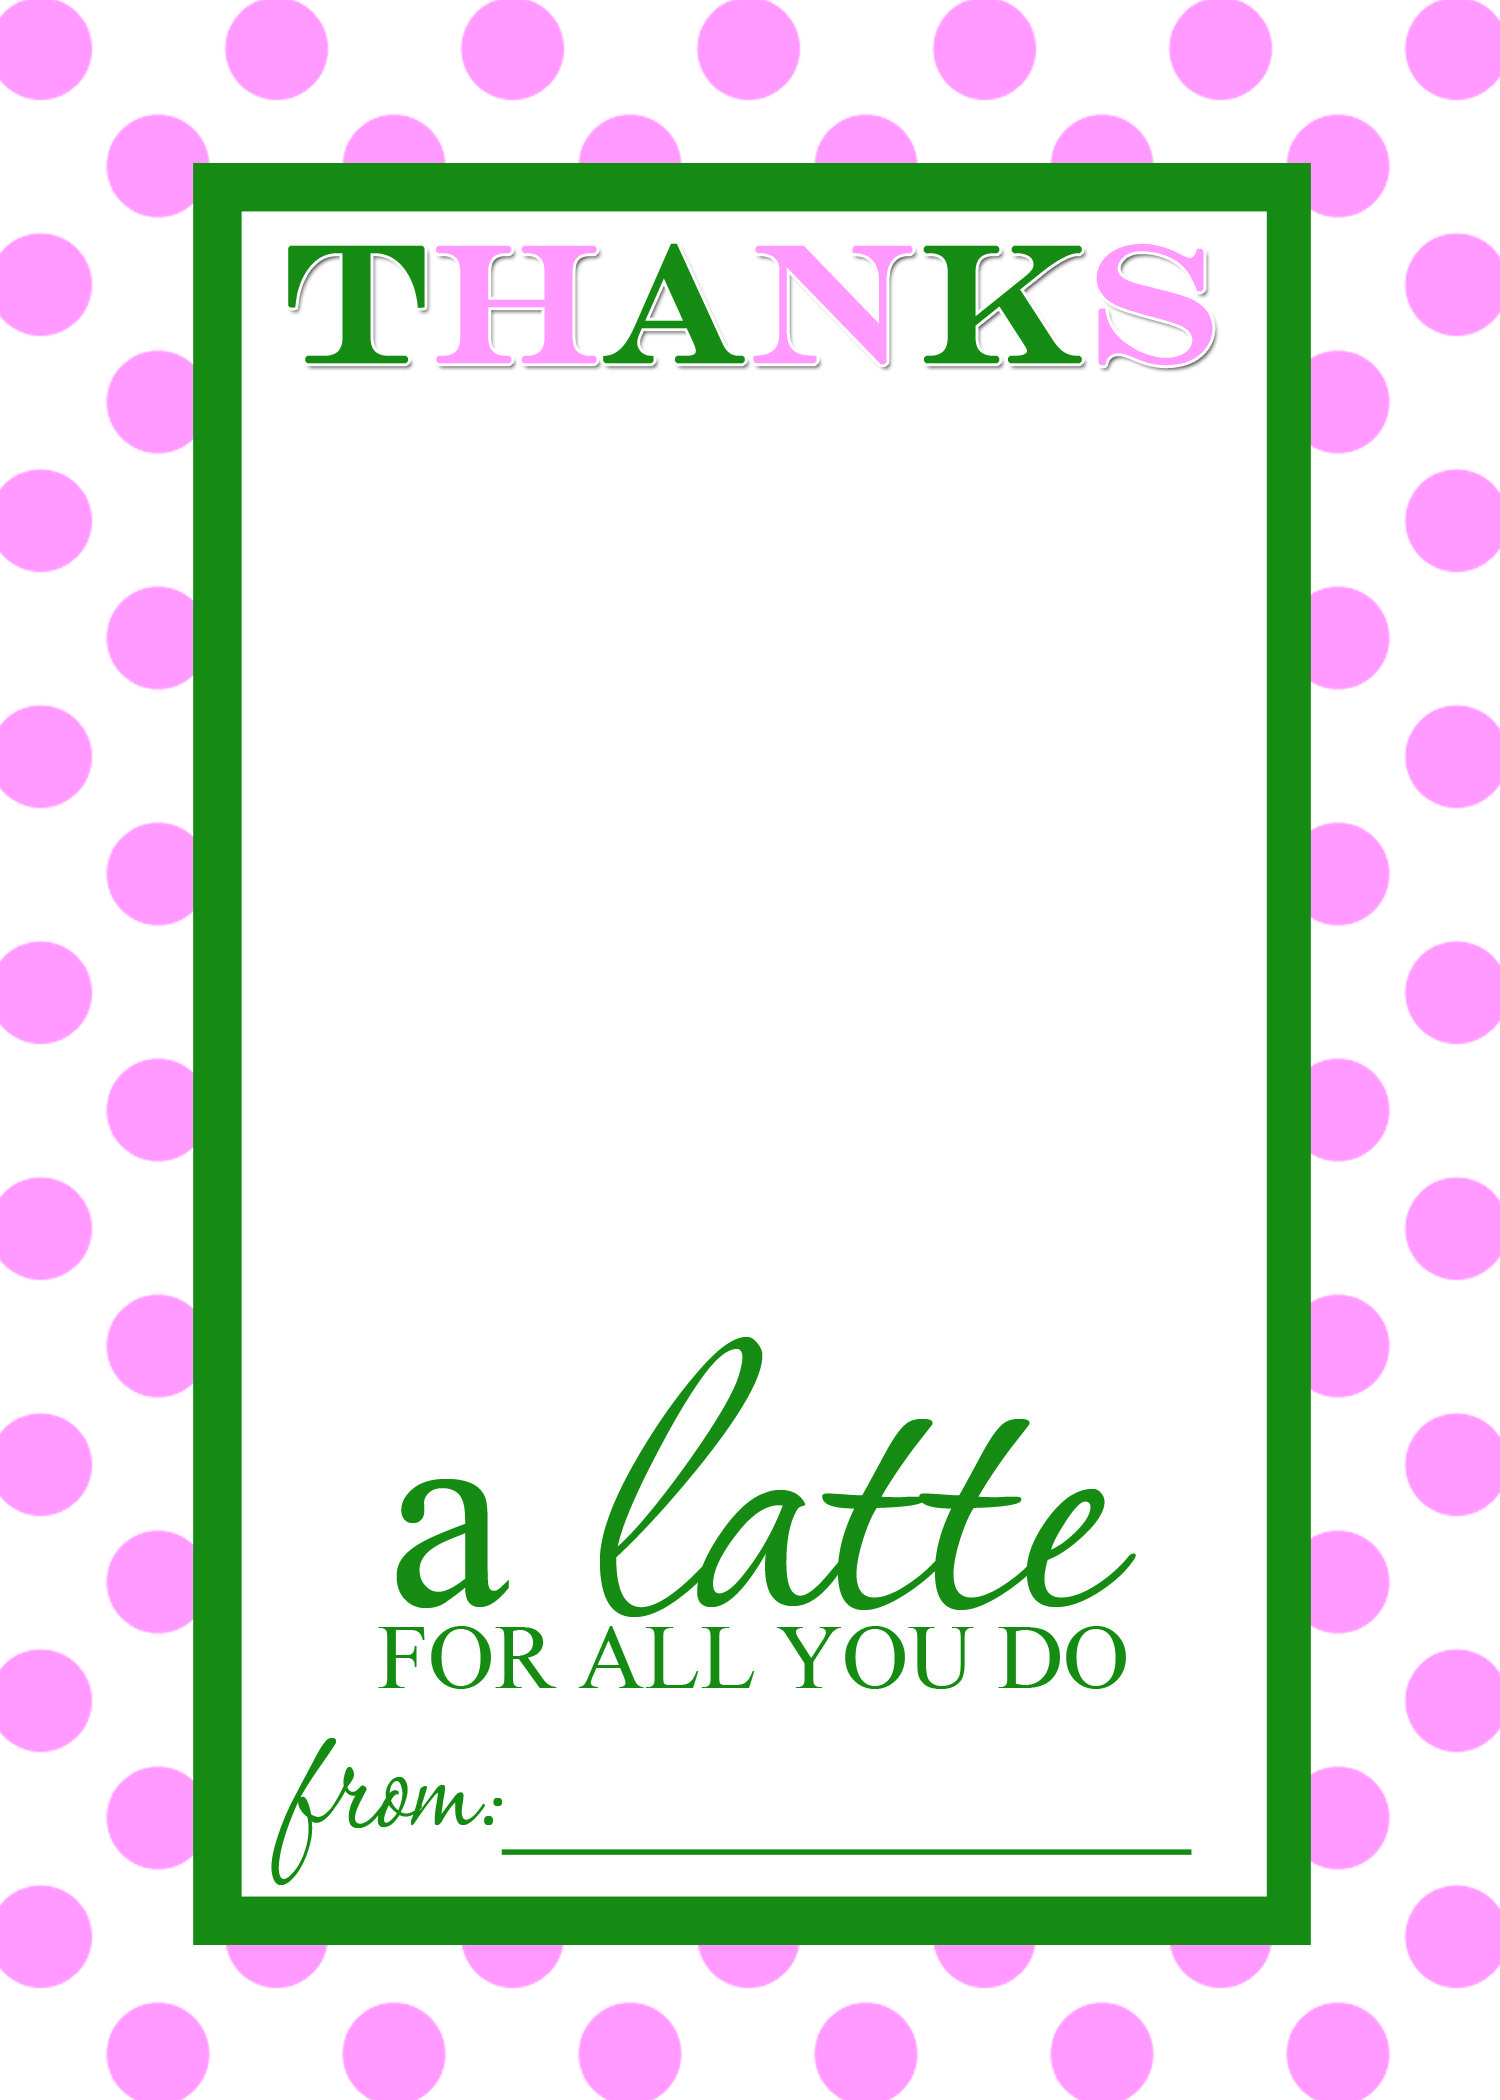 photograph about Thanks a Latte Printable identify Owing a Latte Absolutely free Printable Reward Card Holder Trainer Present